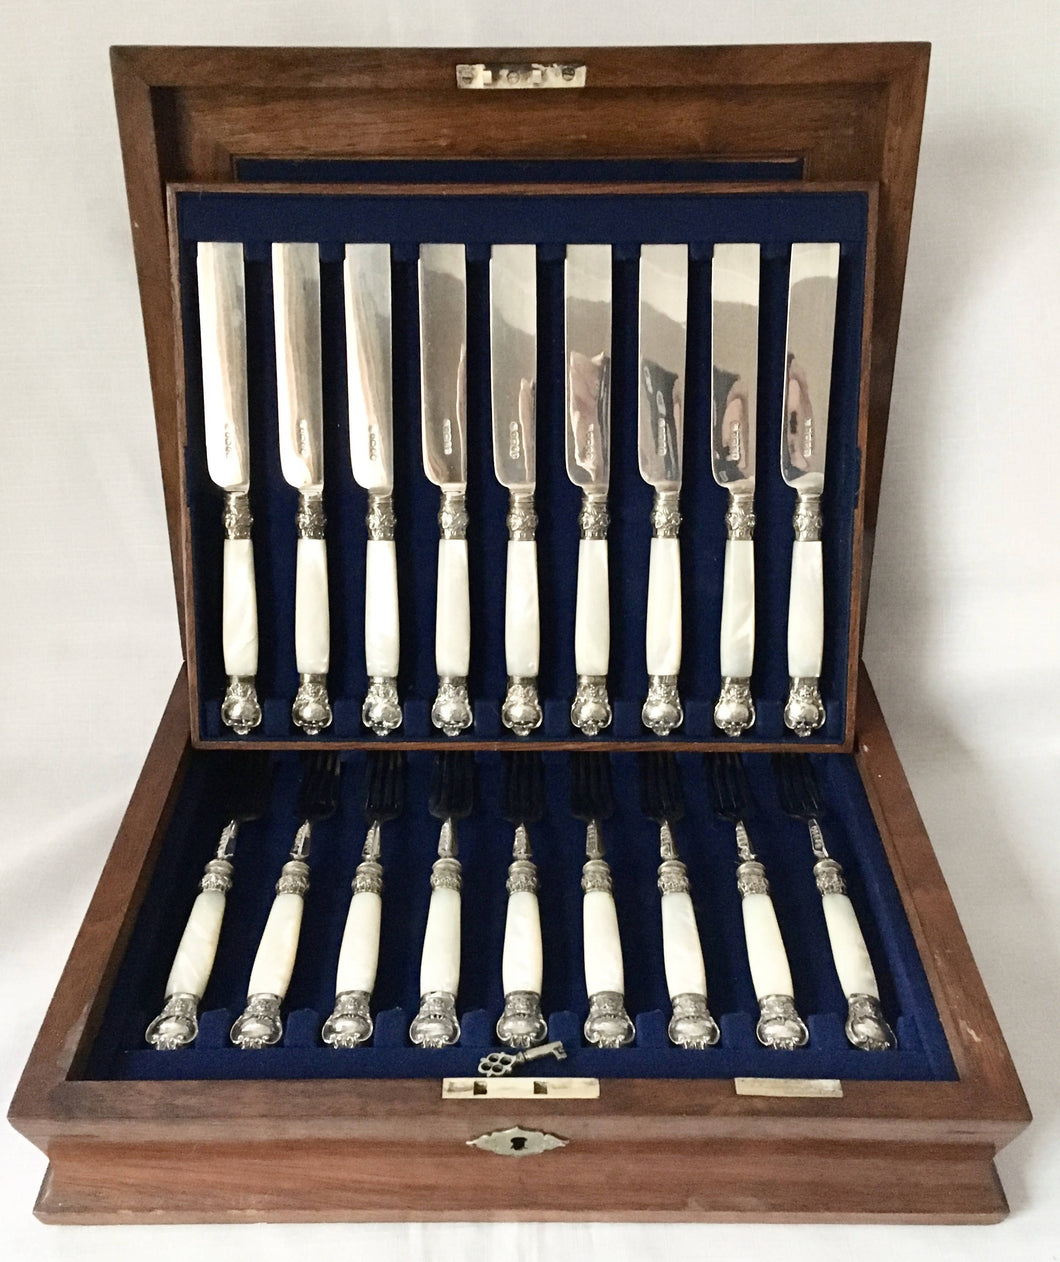 Victorian silver and mother of pearl dessert knives and forks for nine. Sheffield 1870, Henry Wilkinson & Co.